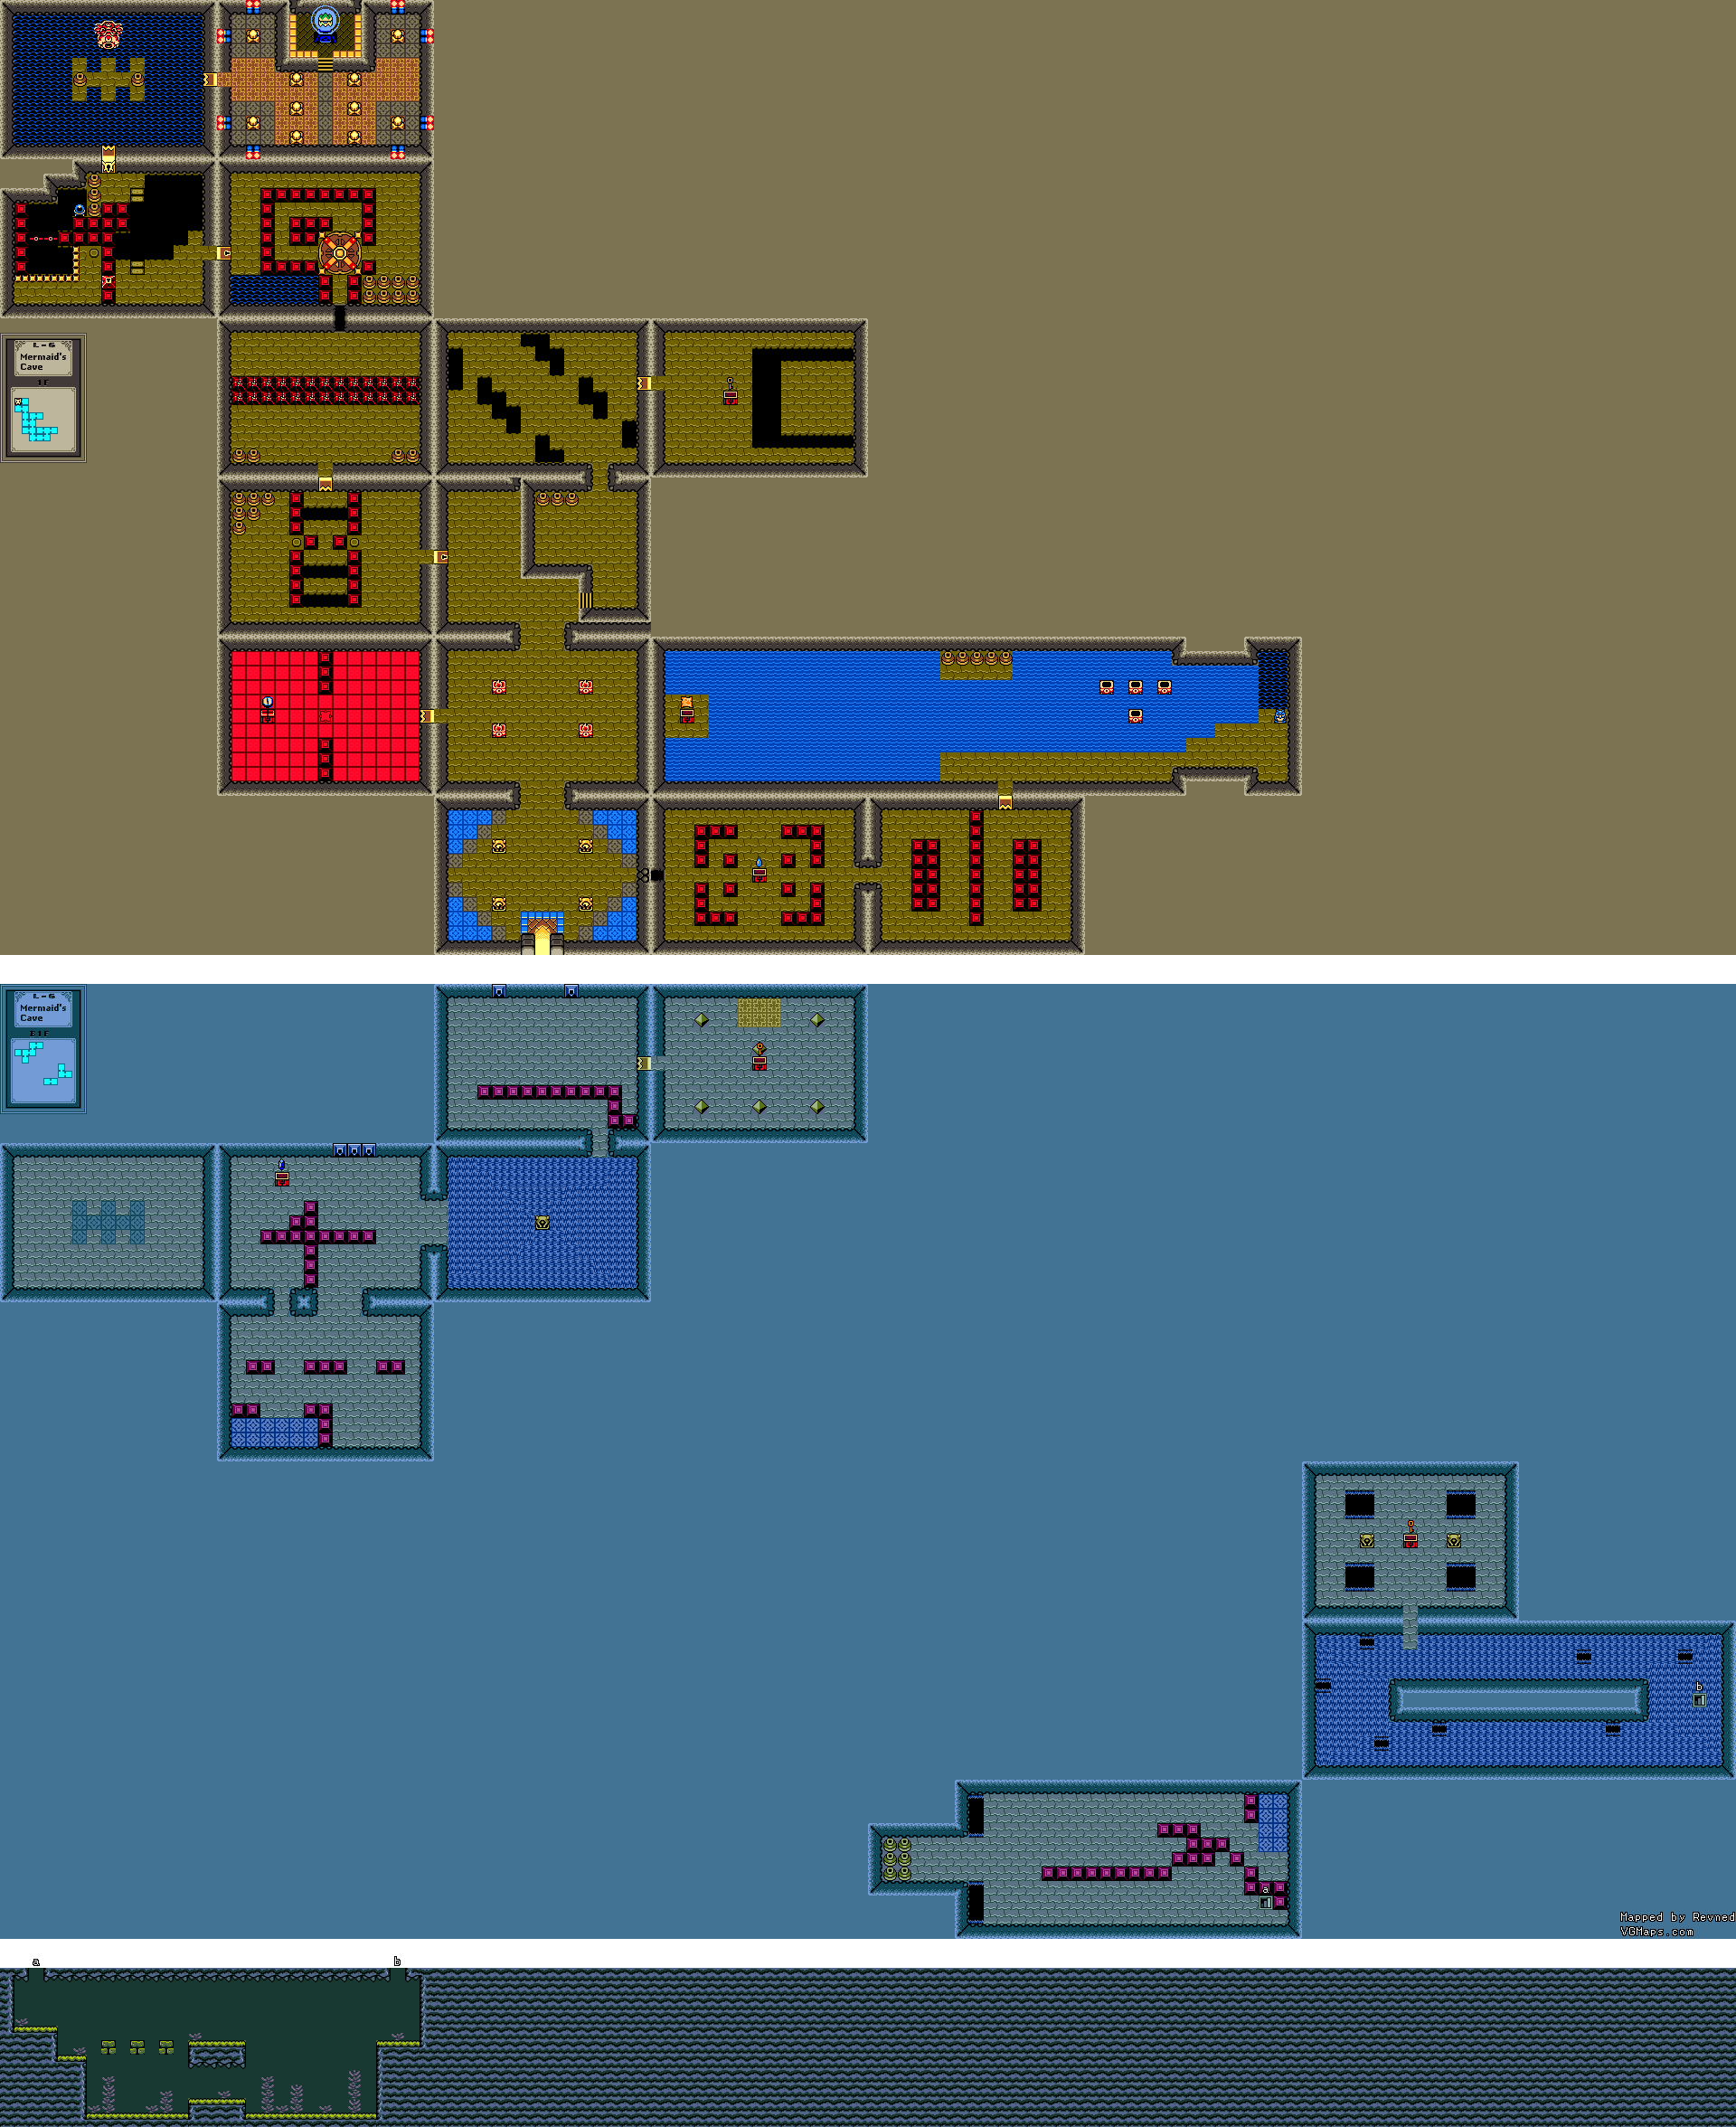 Revned's Video Game Maps - The Legend of Zelda: Oracle of Ages